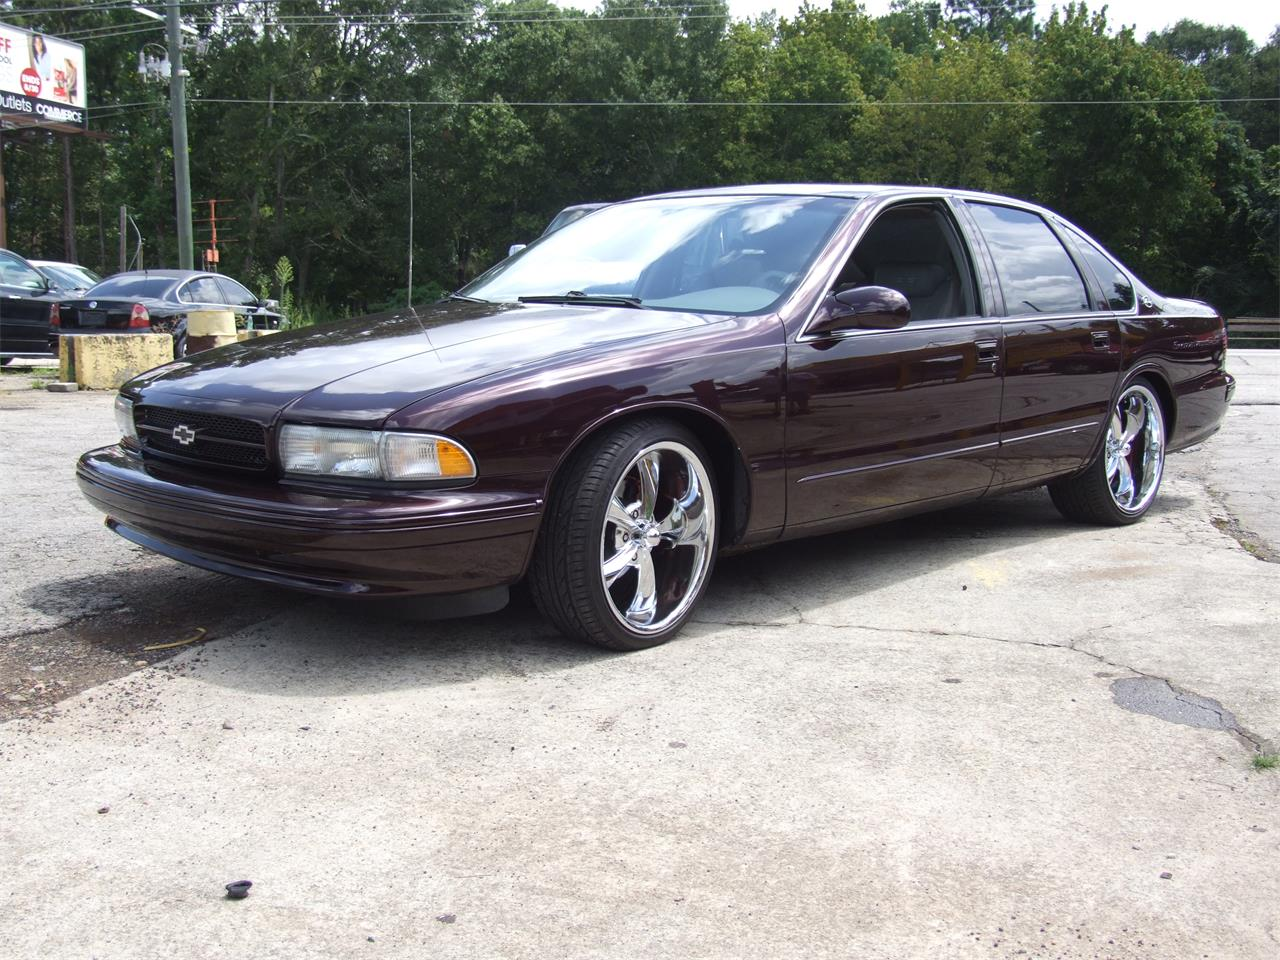 1996 Chevrolet Impala SS (CC-1386003) for sale in Gainesville, Georgia